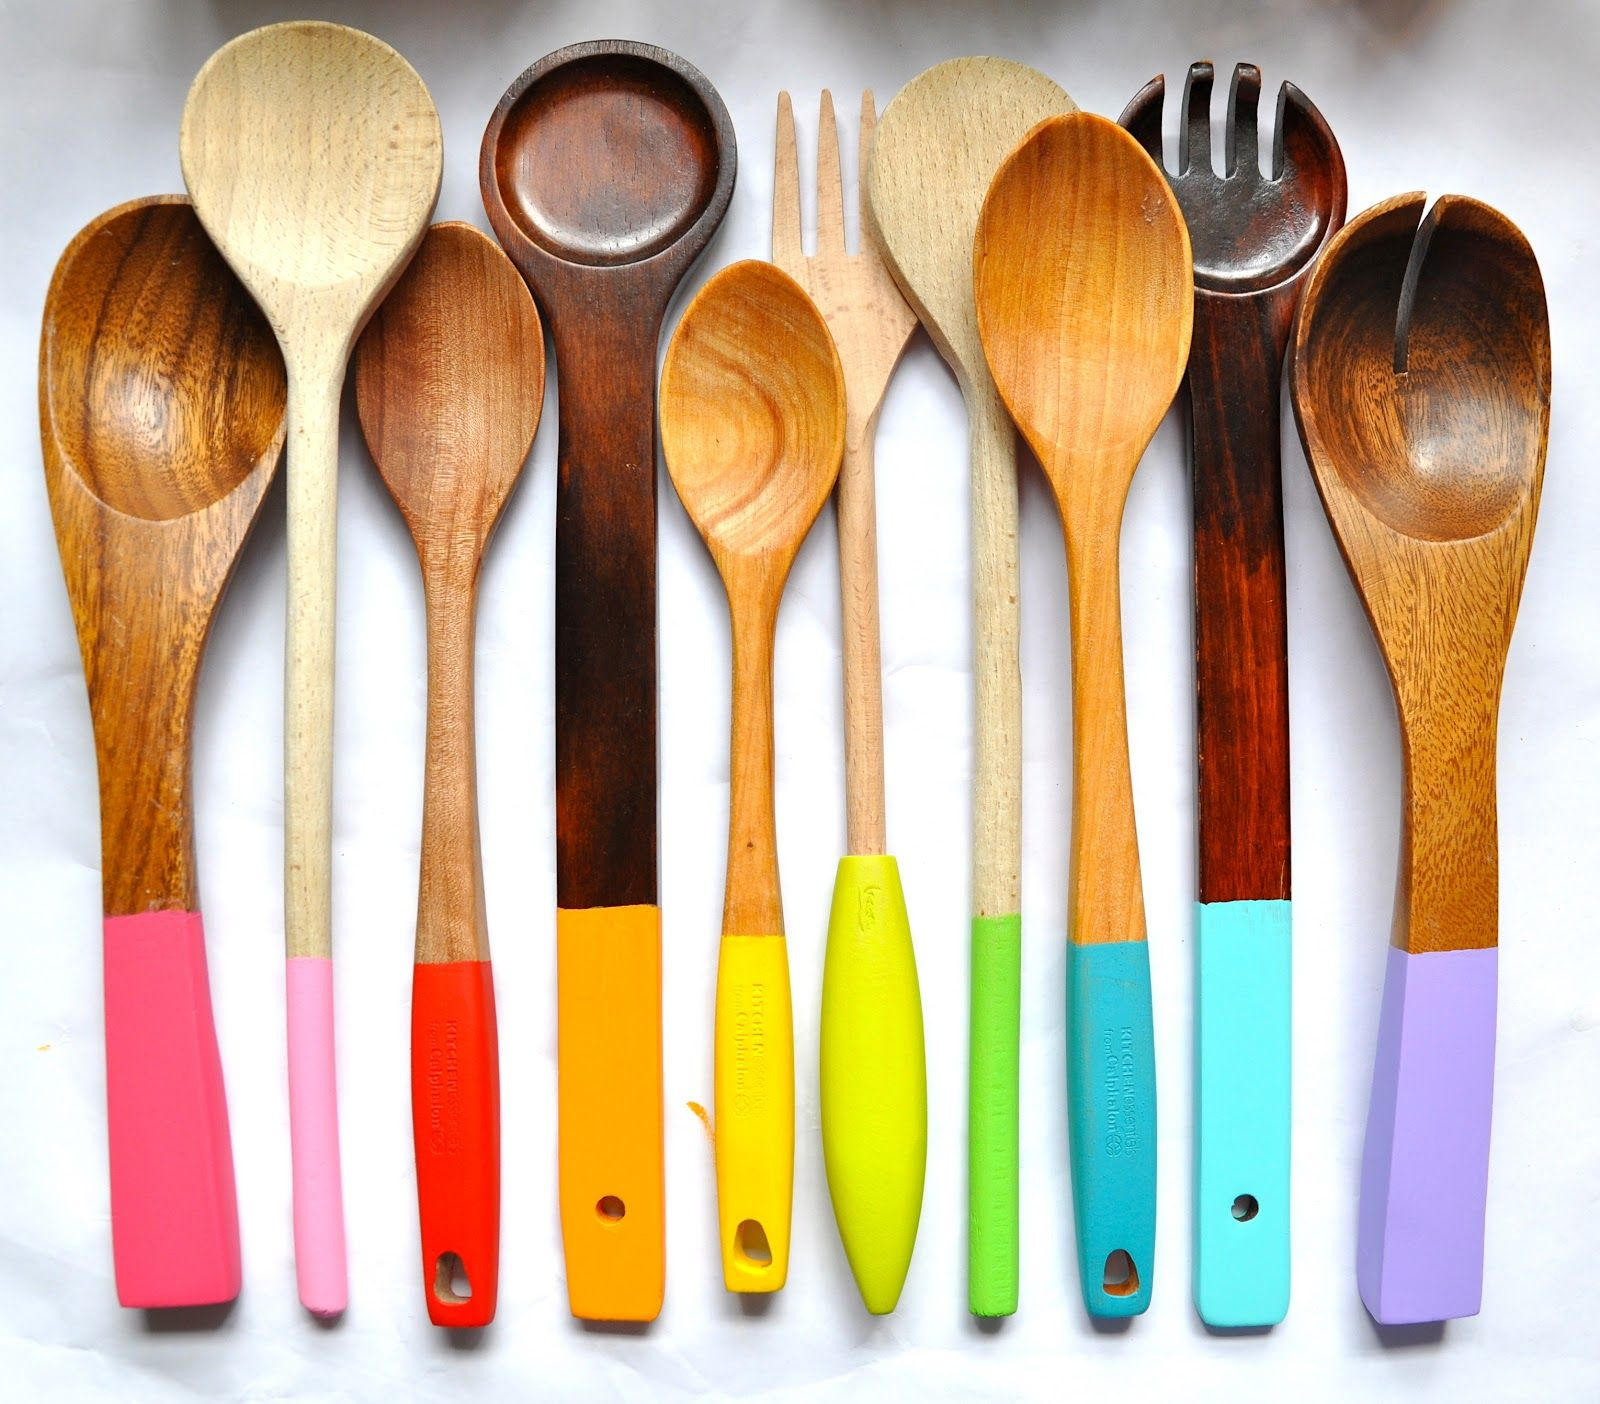 Crafts top 6 spring diy projects wooden spoon spoon for Wooden kitchen spoons